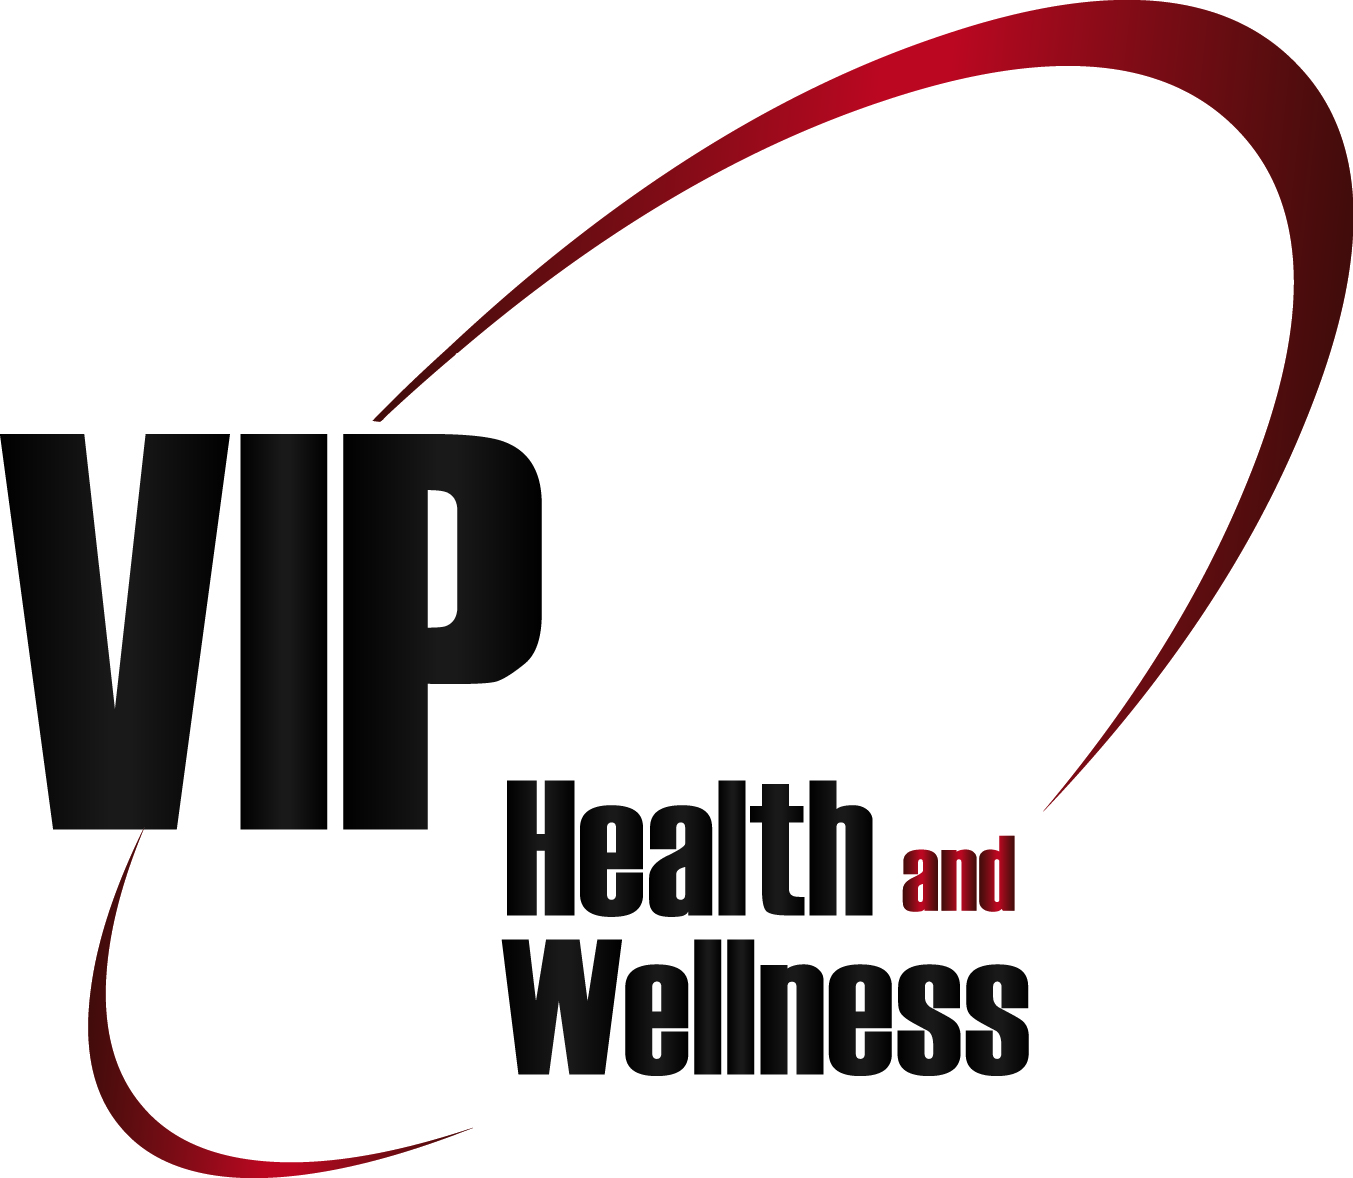 vip health and wellness logo